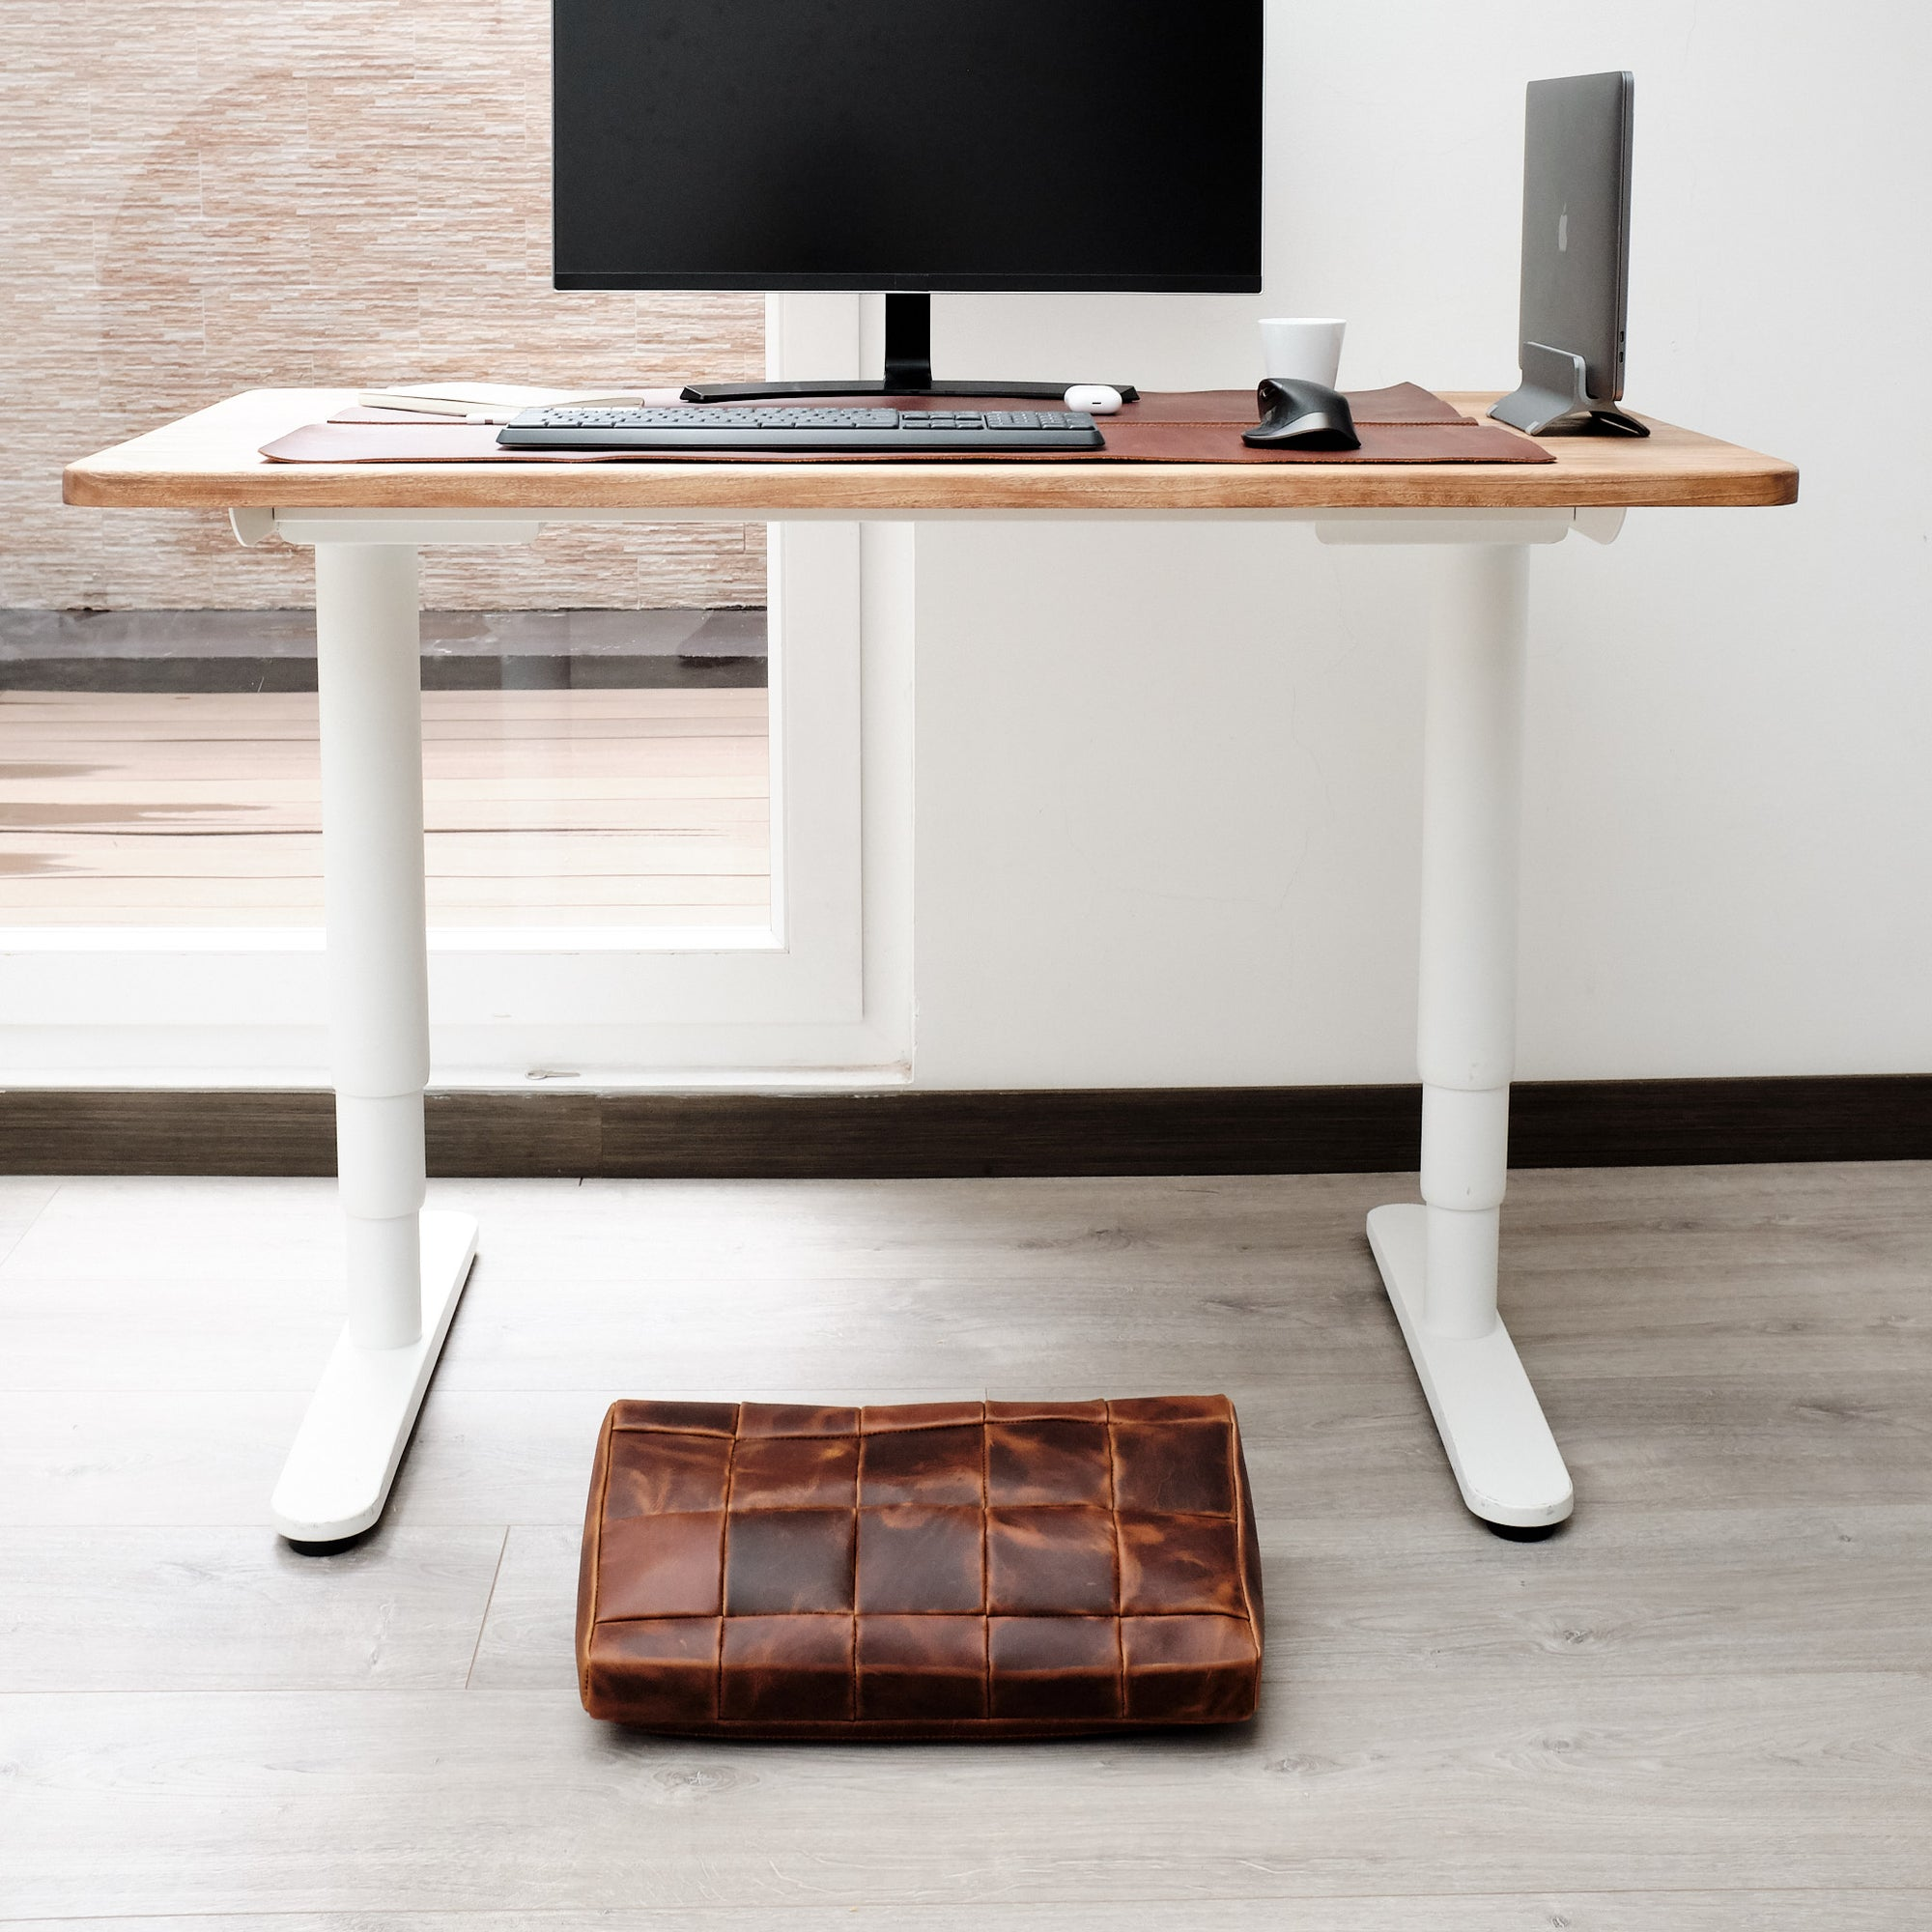 Cover. Ergonomic under desk footrest cover in distressed tan by Capra Leather